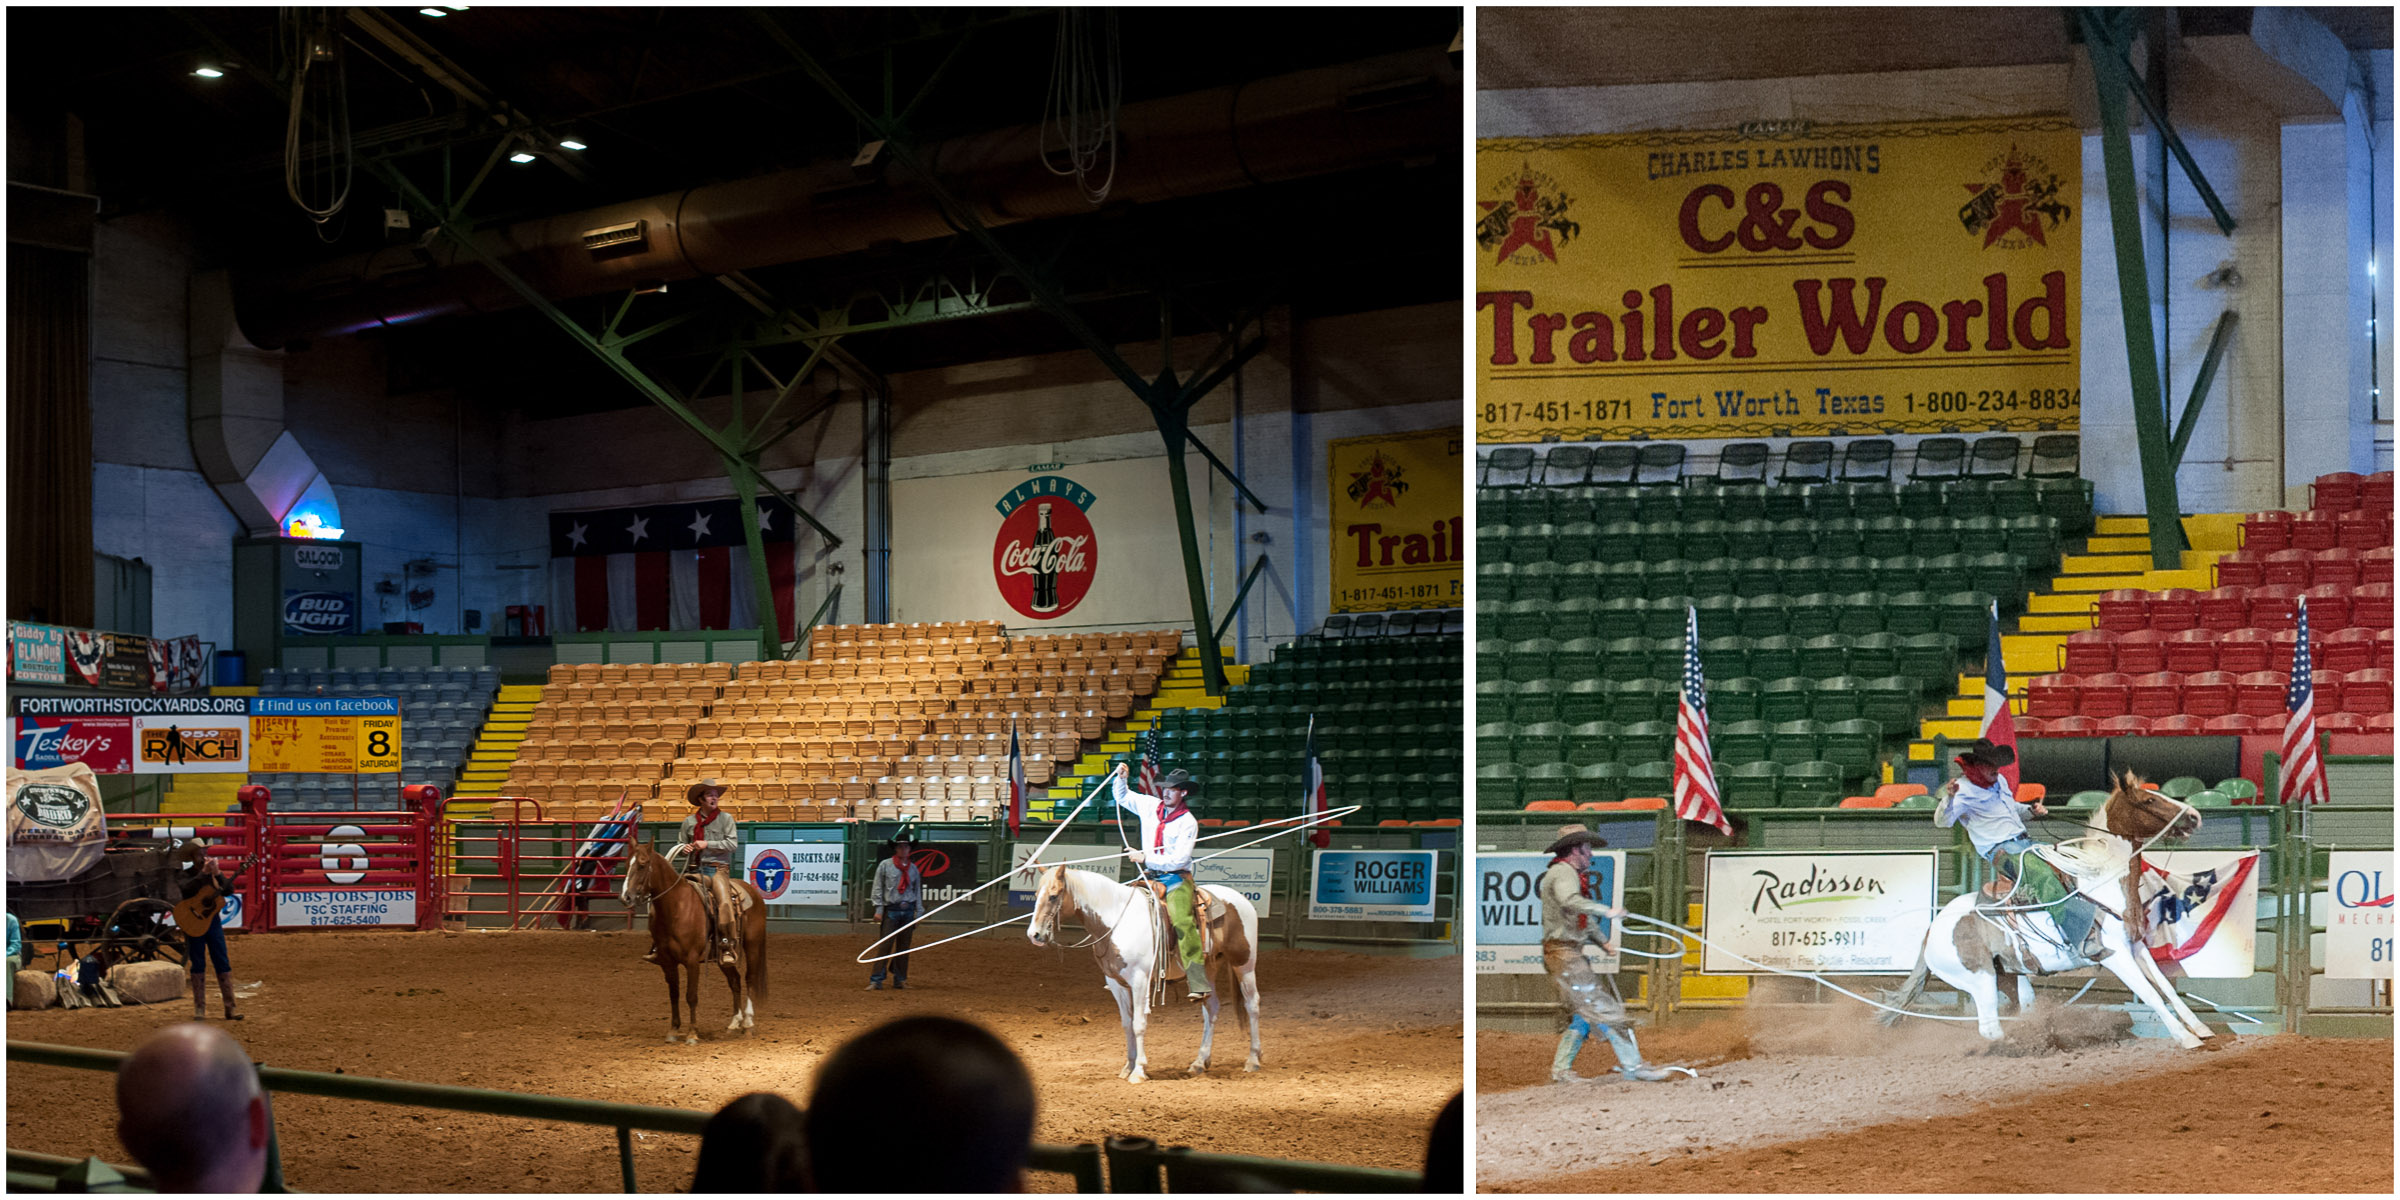 Pawnee Bill's Wild West Show at the Cowtown Coliseum